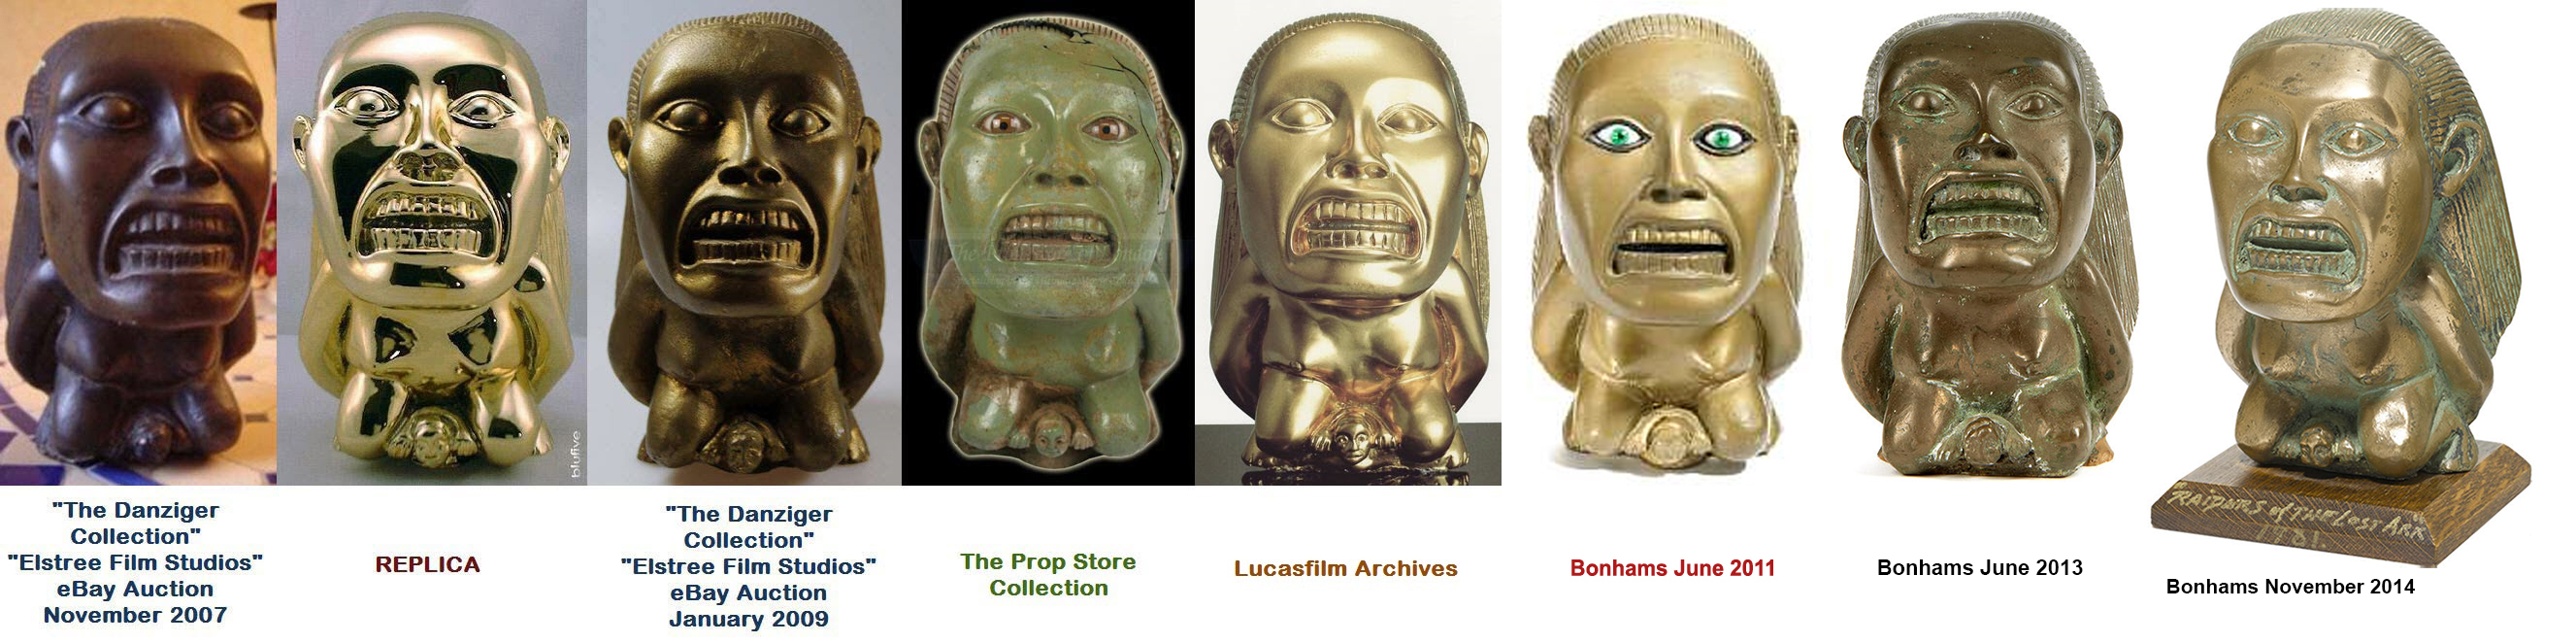 'Raiders of the Lost Ark' Movie Prop Fertility Idols In The Marketplace Update 2014